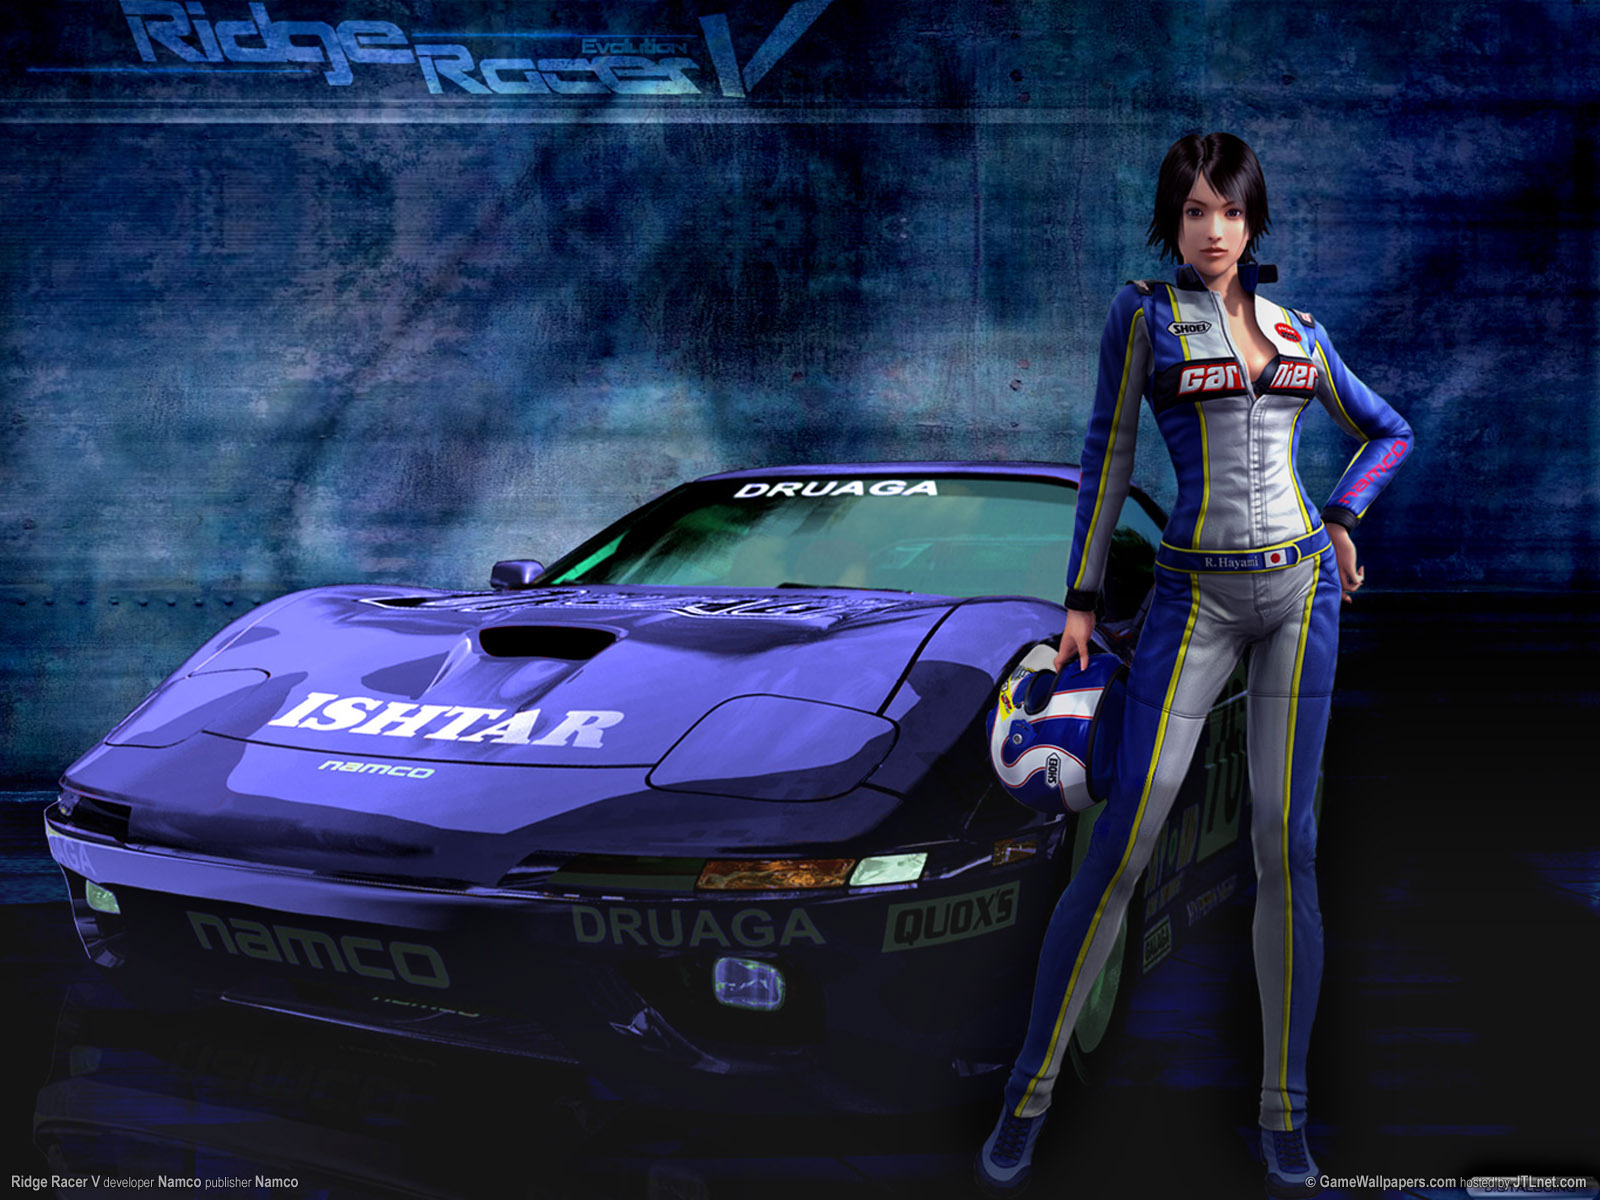 Cool Race Car Hd Wallpapers Ridge Racer V Wallpapers Ridge Racer V Stock Photos